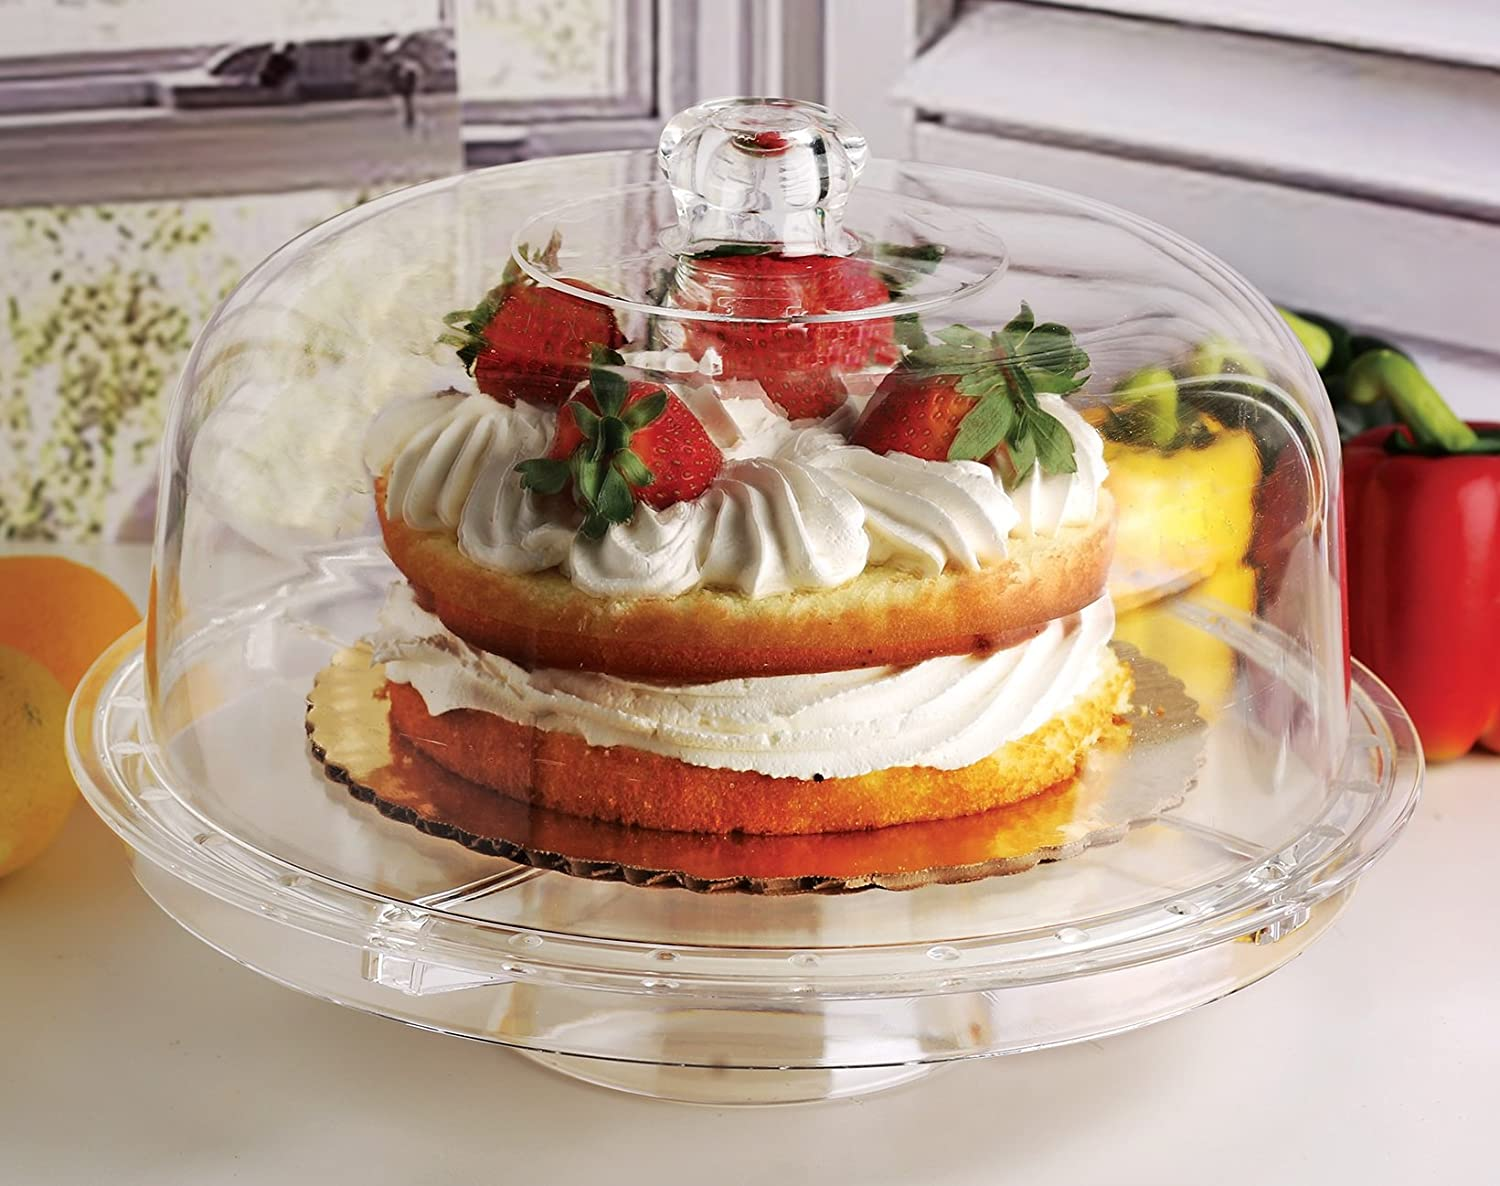 Circleware Acrylic Multi-Functional Glass Cake Stand Plate with Dome Home & Kitchen Entertainment Serveware for Fruit, Ice Cream, Dessert, Salad, Cheese, Candy, Food Serving Platter, 12